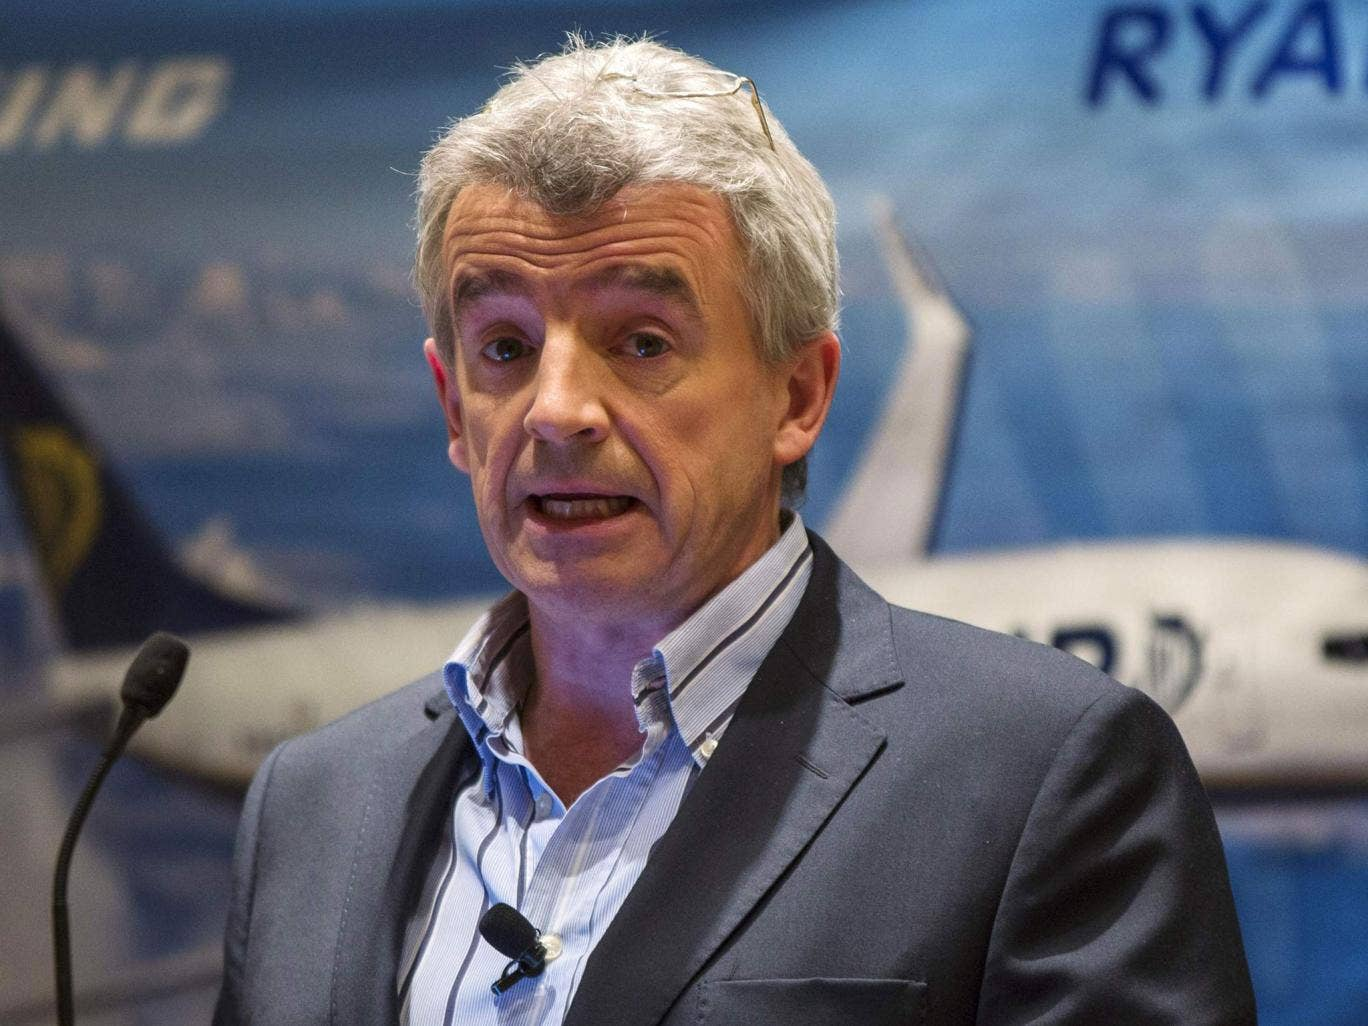 Michael O'Leary, chief executive of Ryanair, has courted publicity for the company in the past